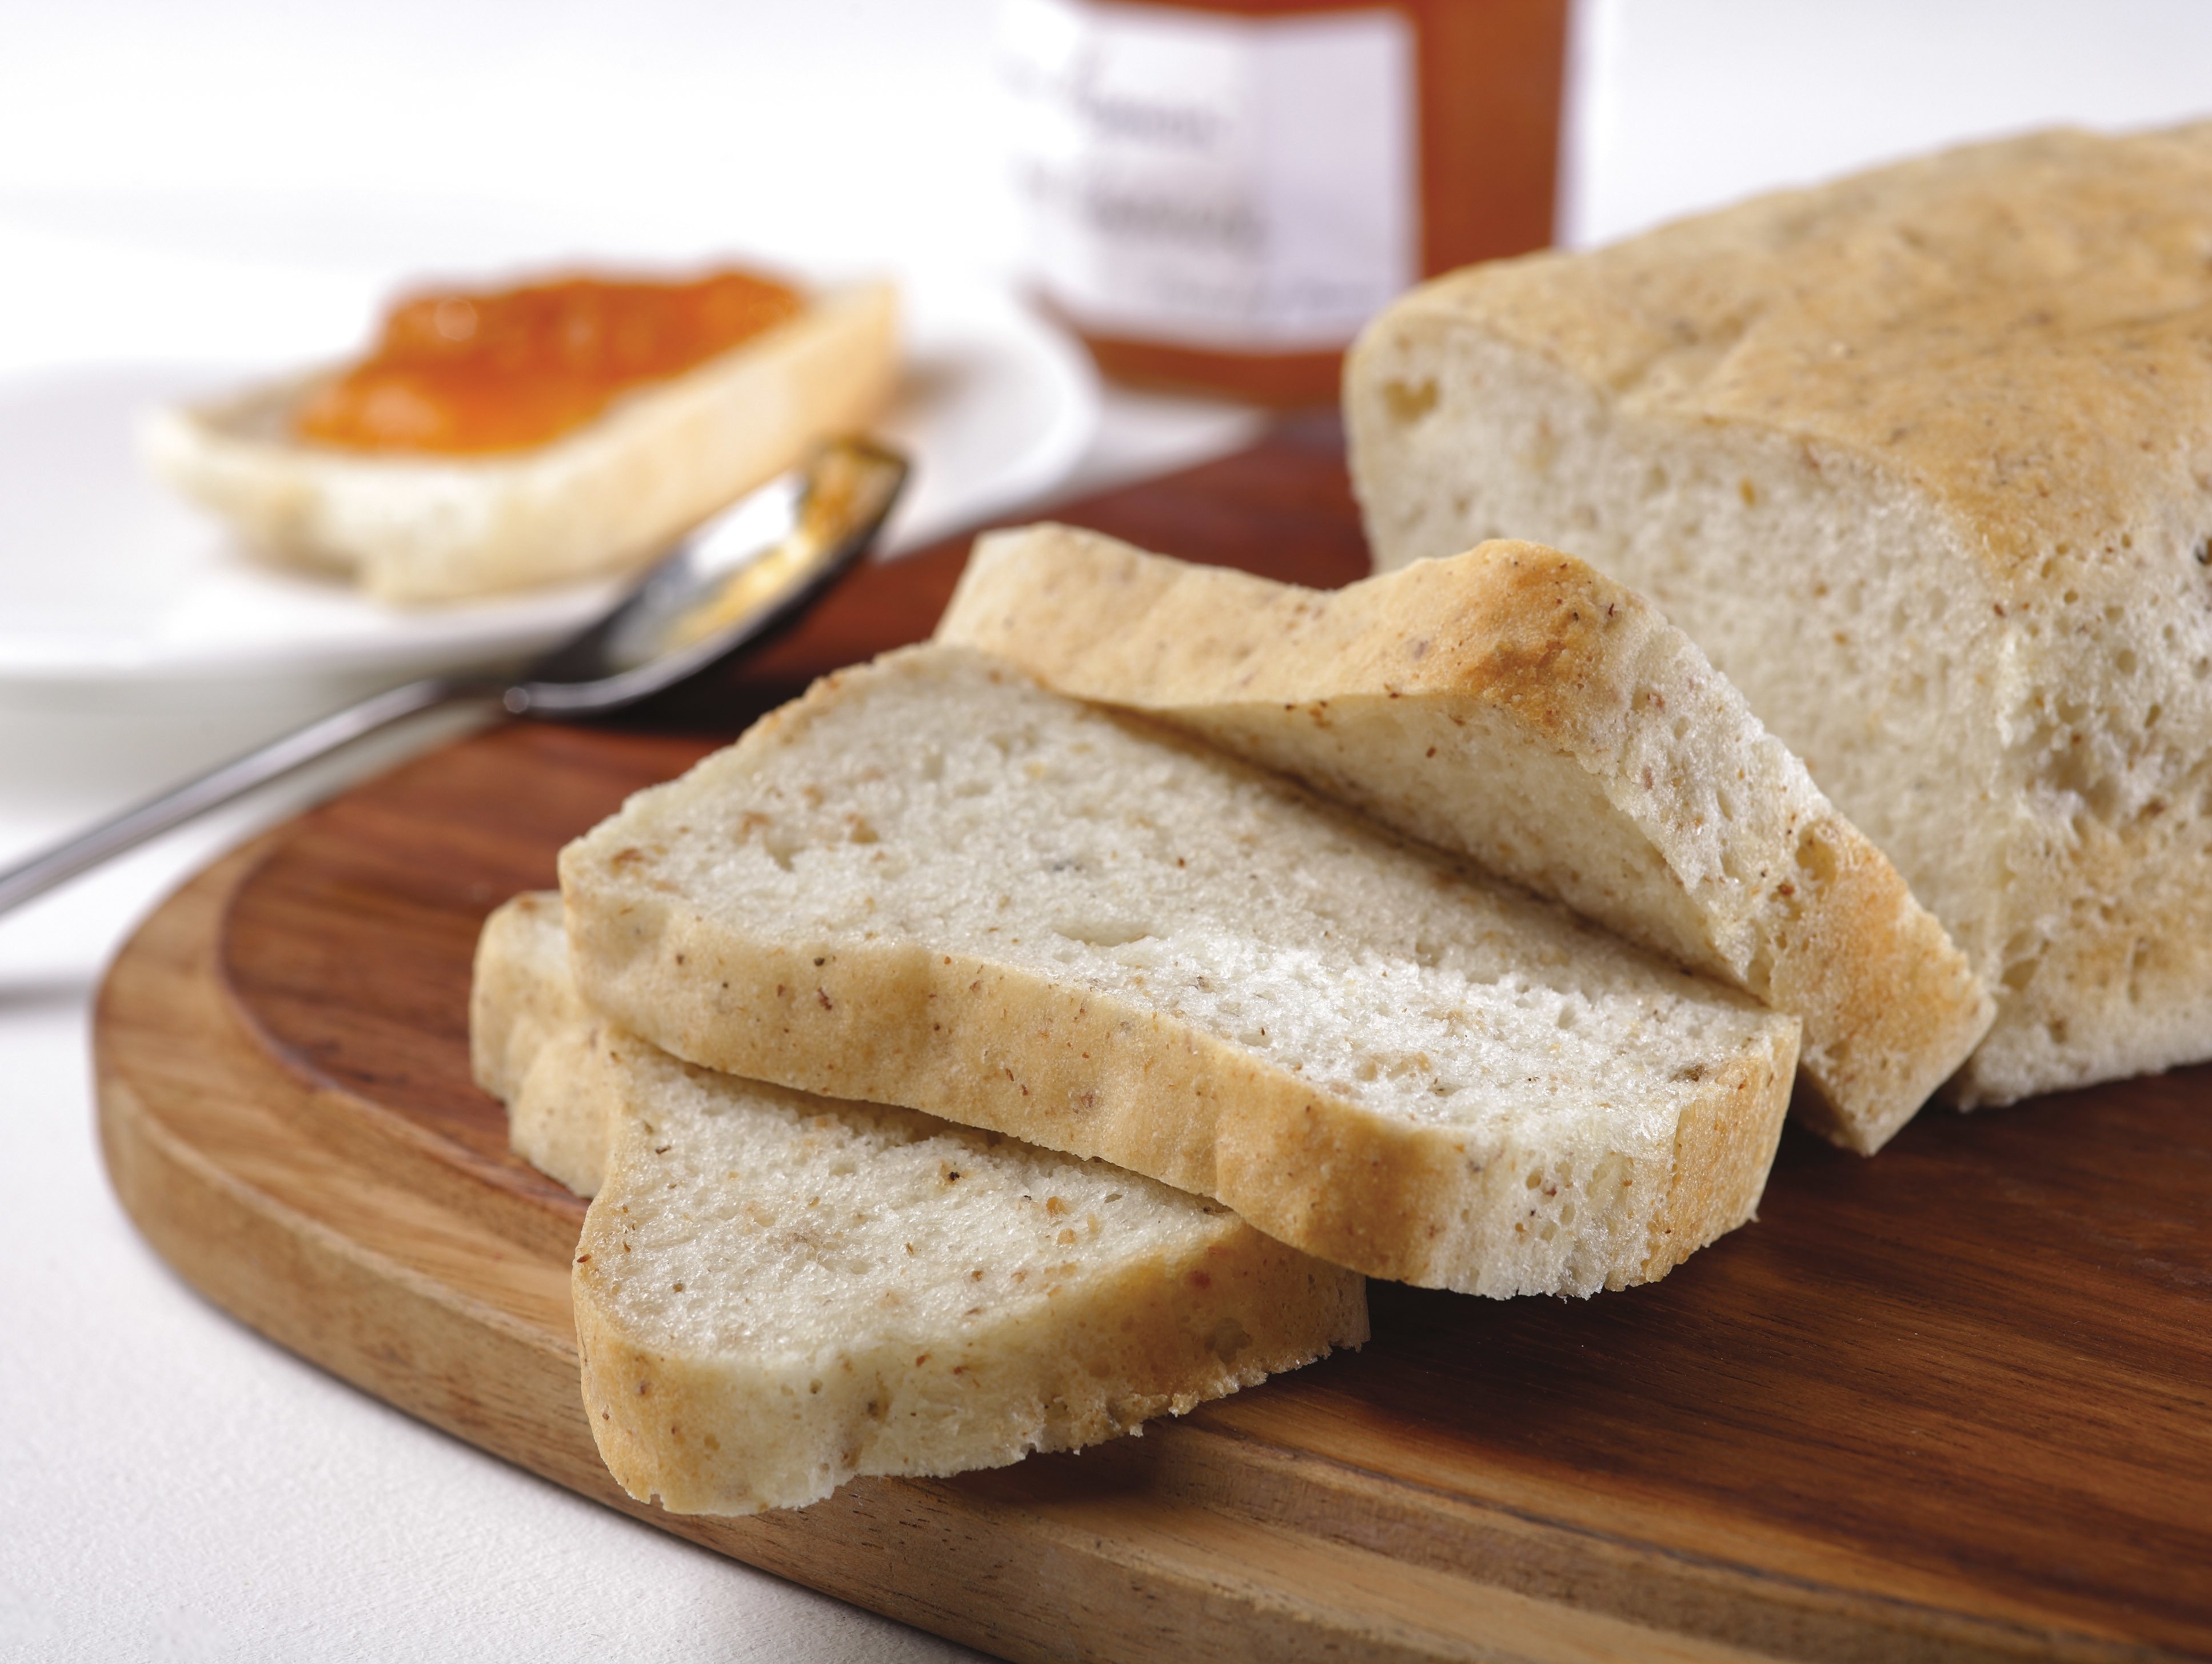 GF-image-Wheat-free-fibre-sliced-bread.jpg#asset:17135